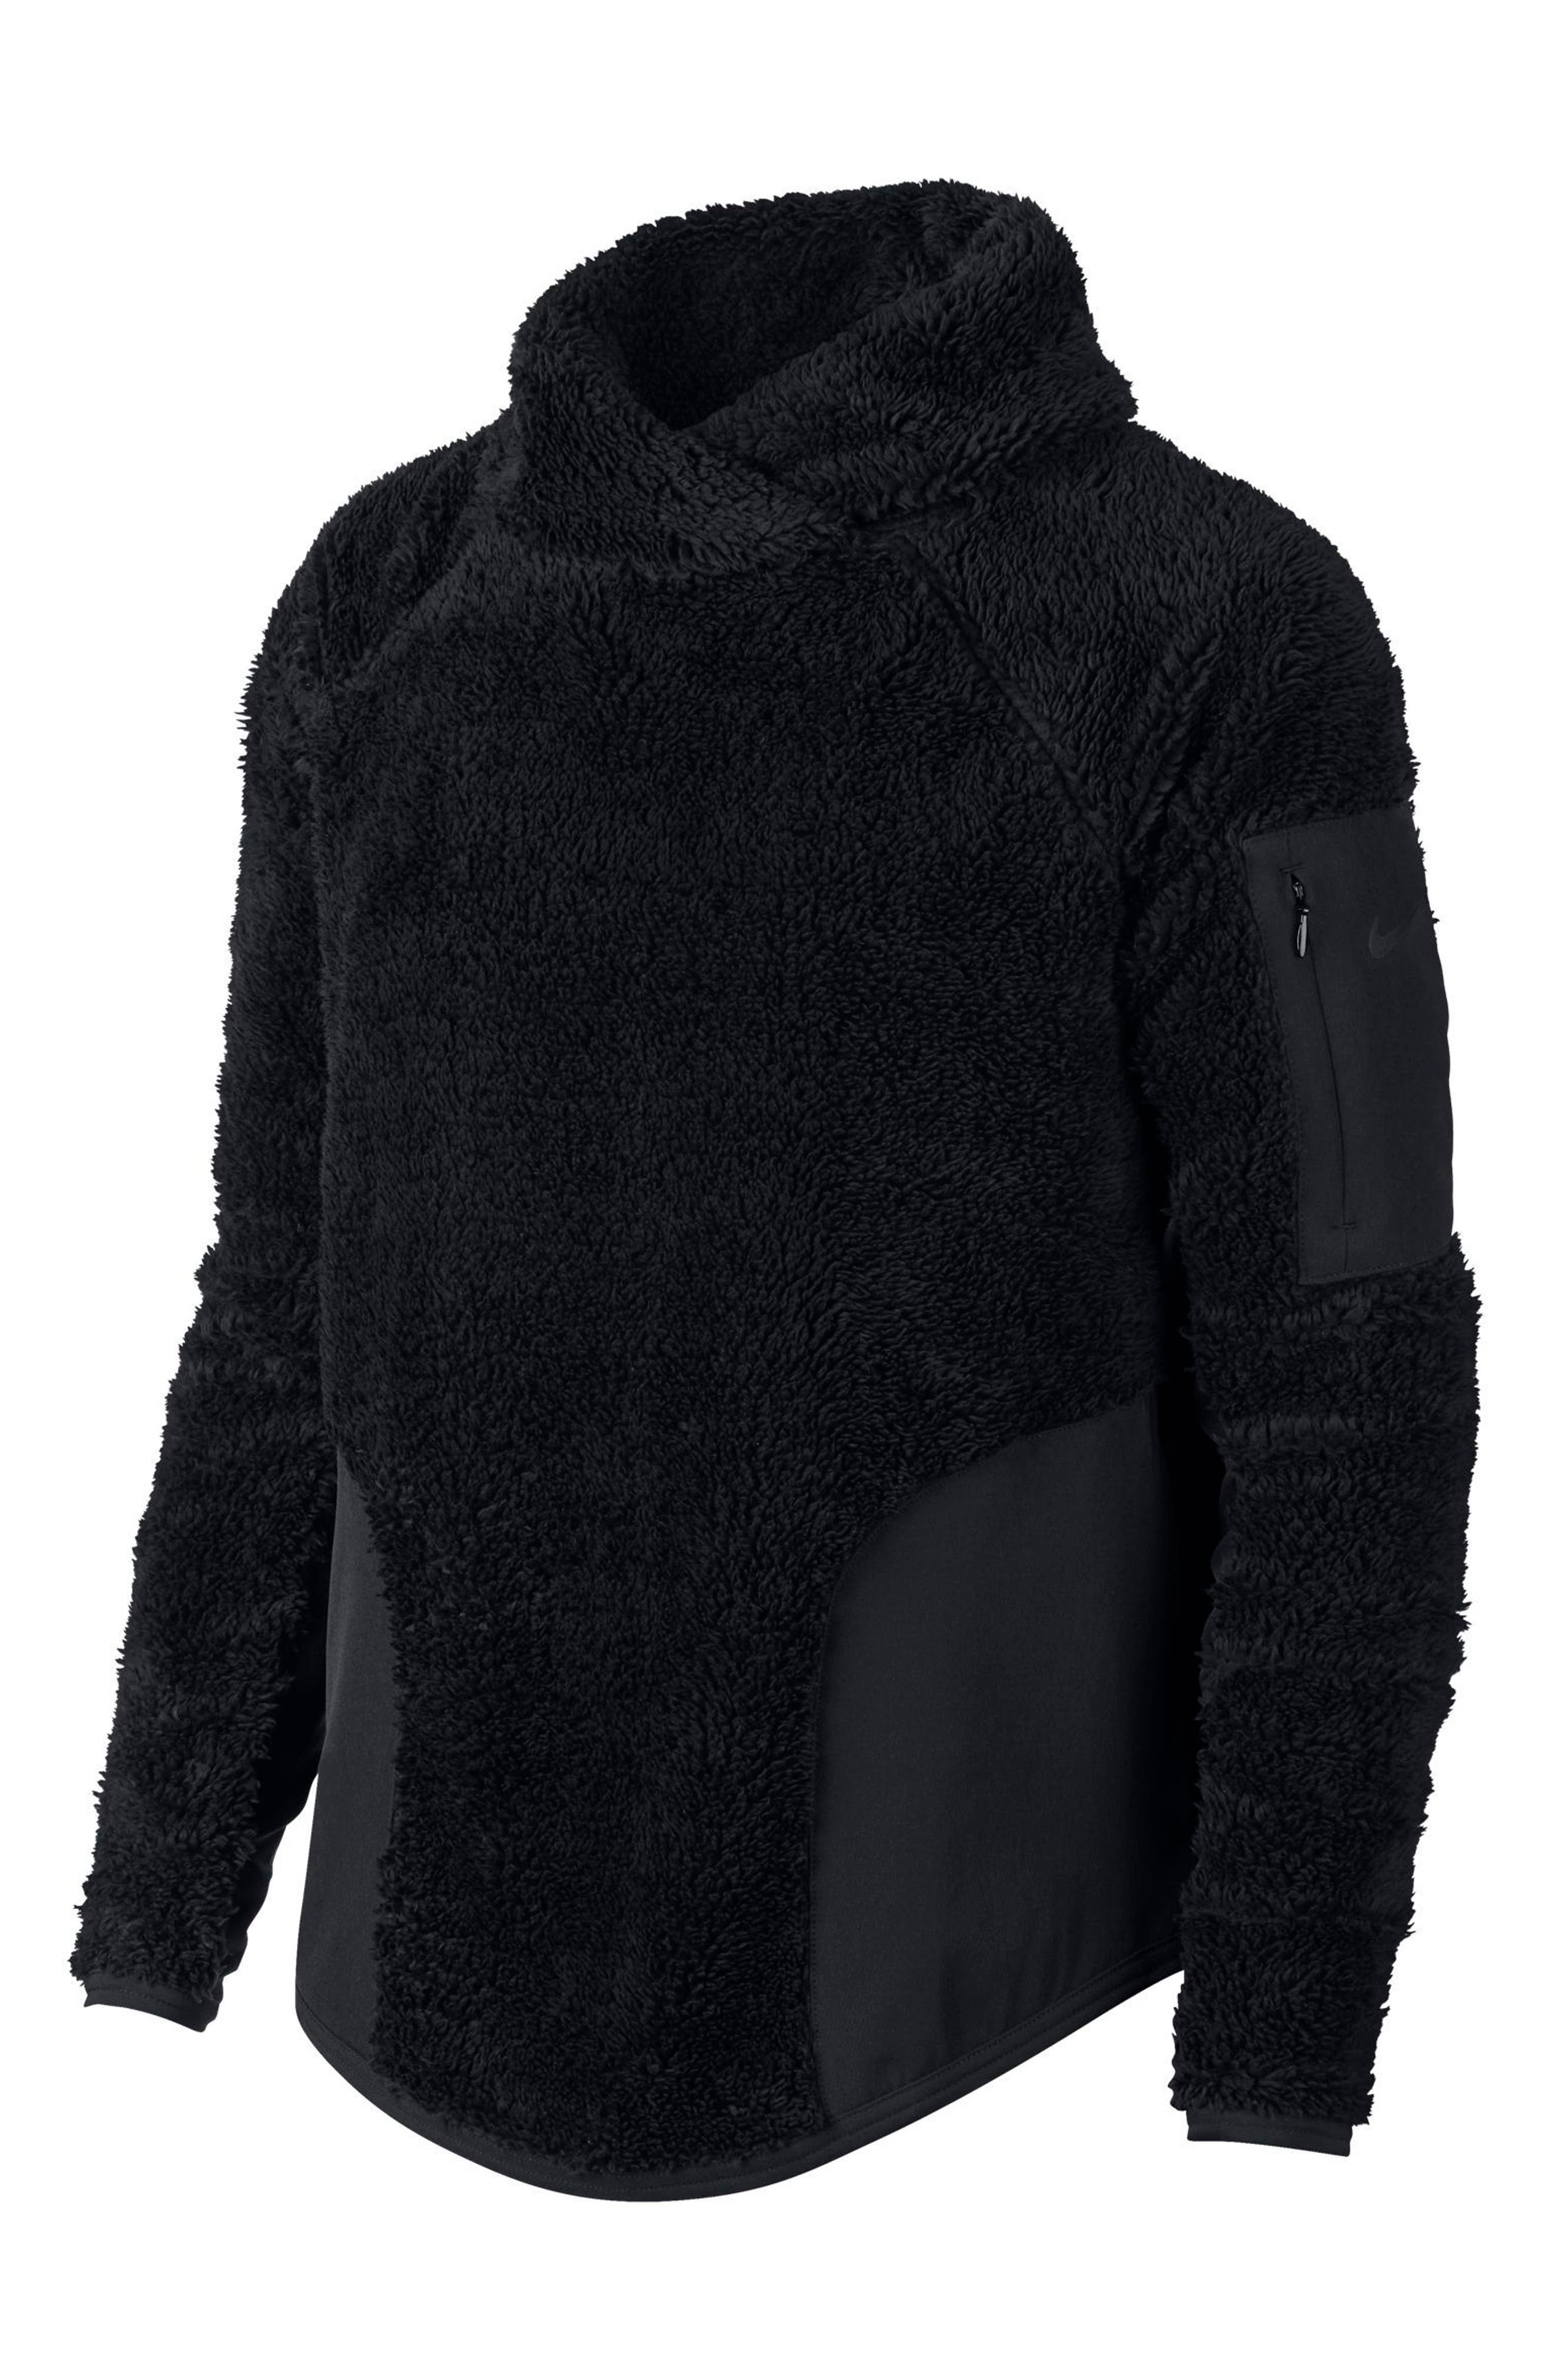 Stand-Collar Sherpa Pullover Active Top in Black/ Black